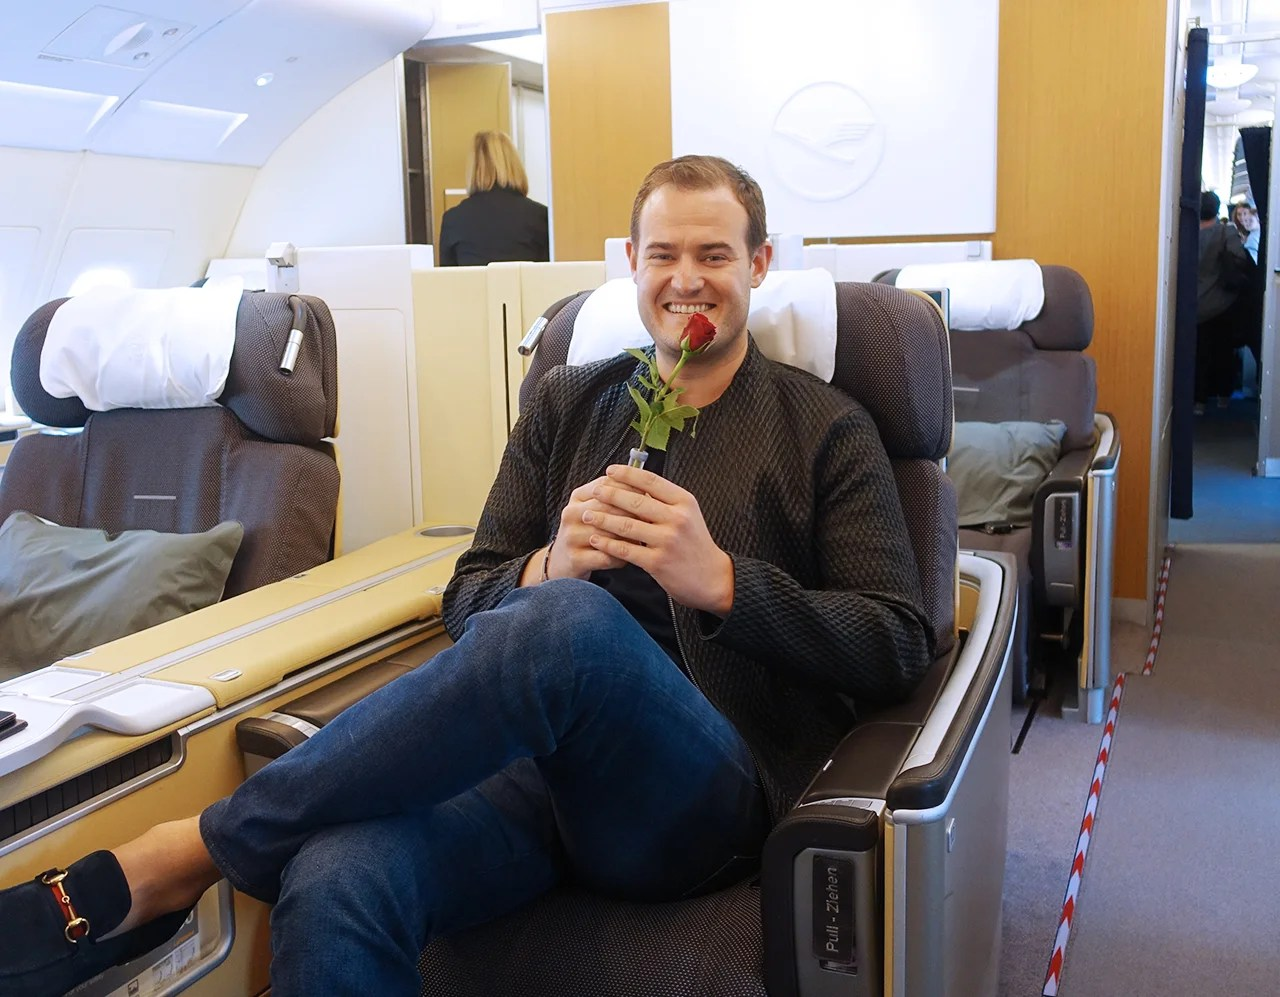 Ultimate Rewards saved the day, letting me book a last-minute flight home in Lufthansa first class through United.